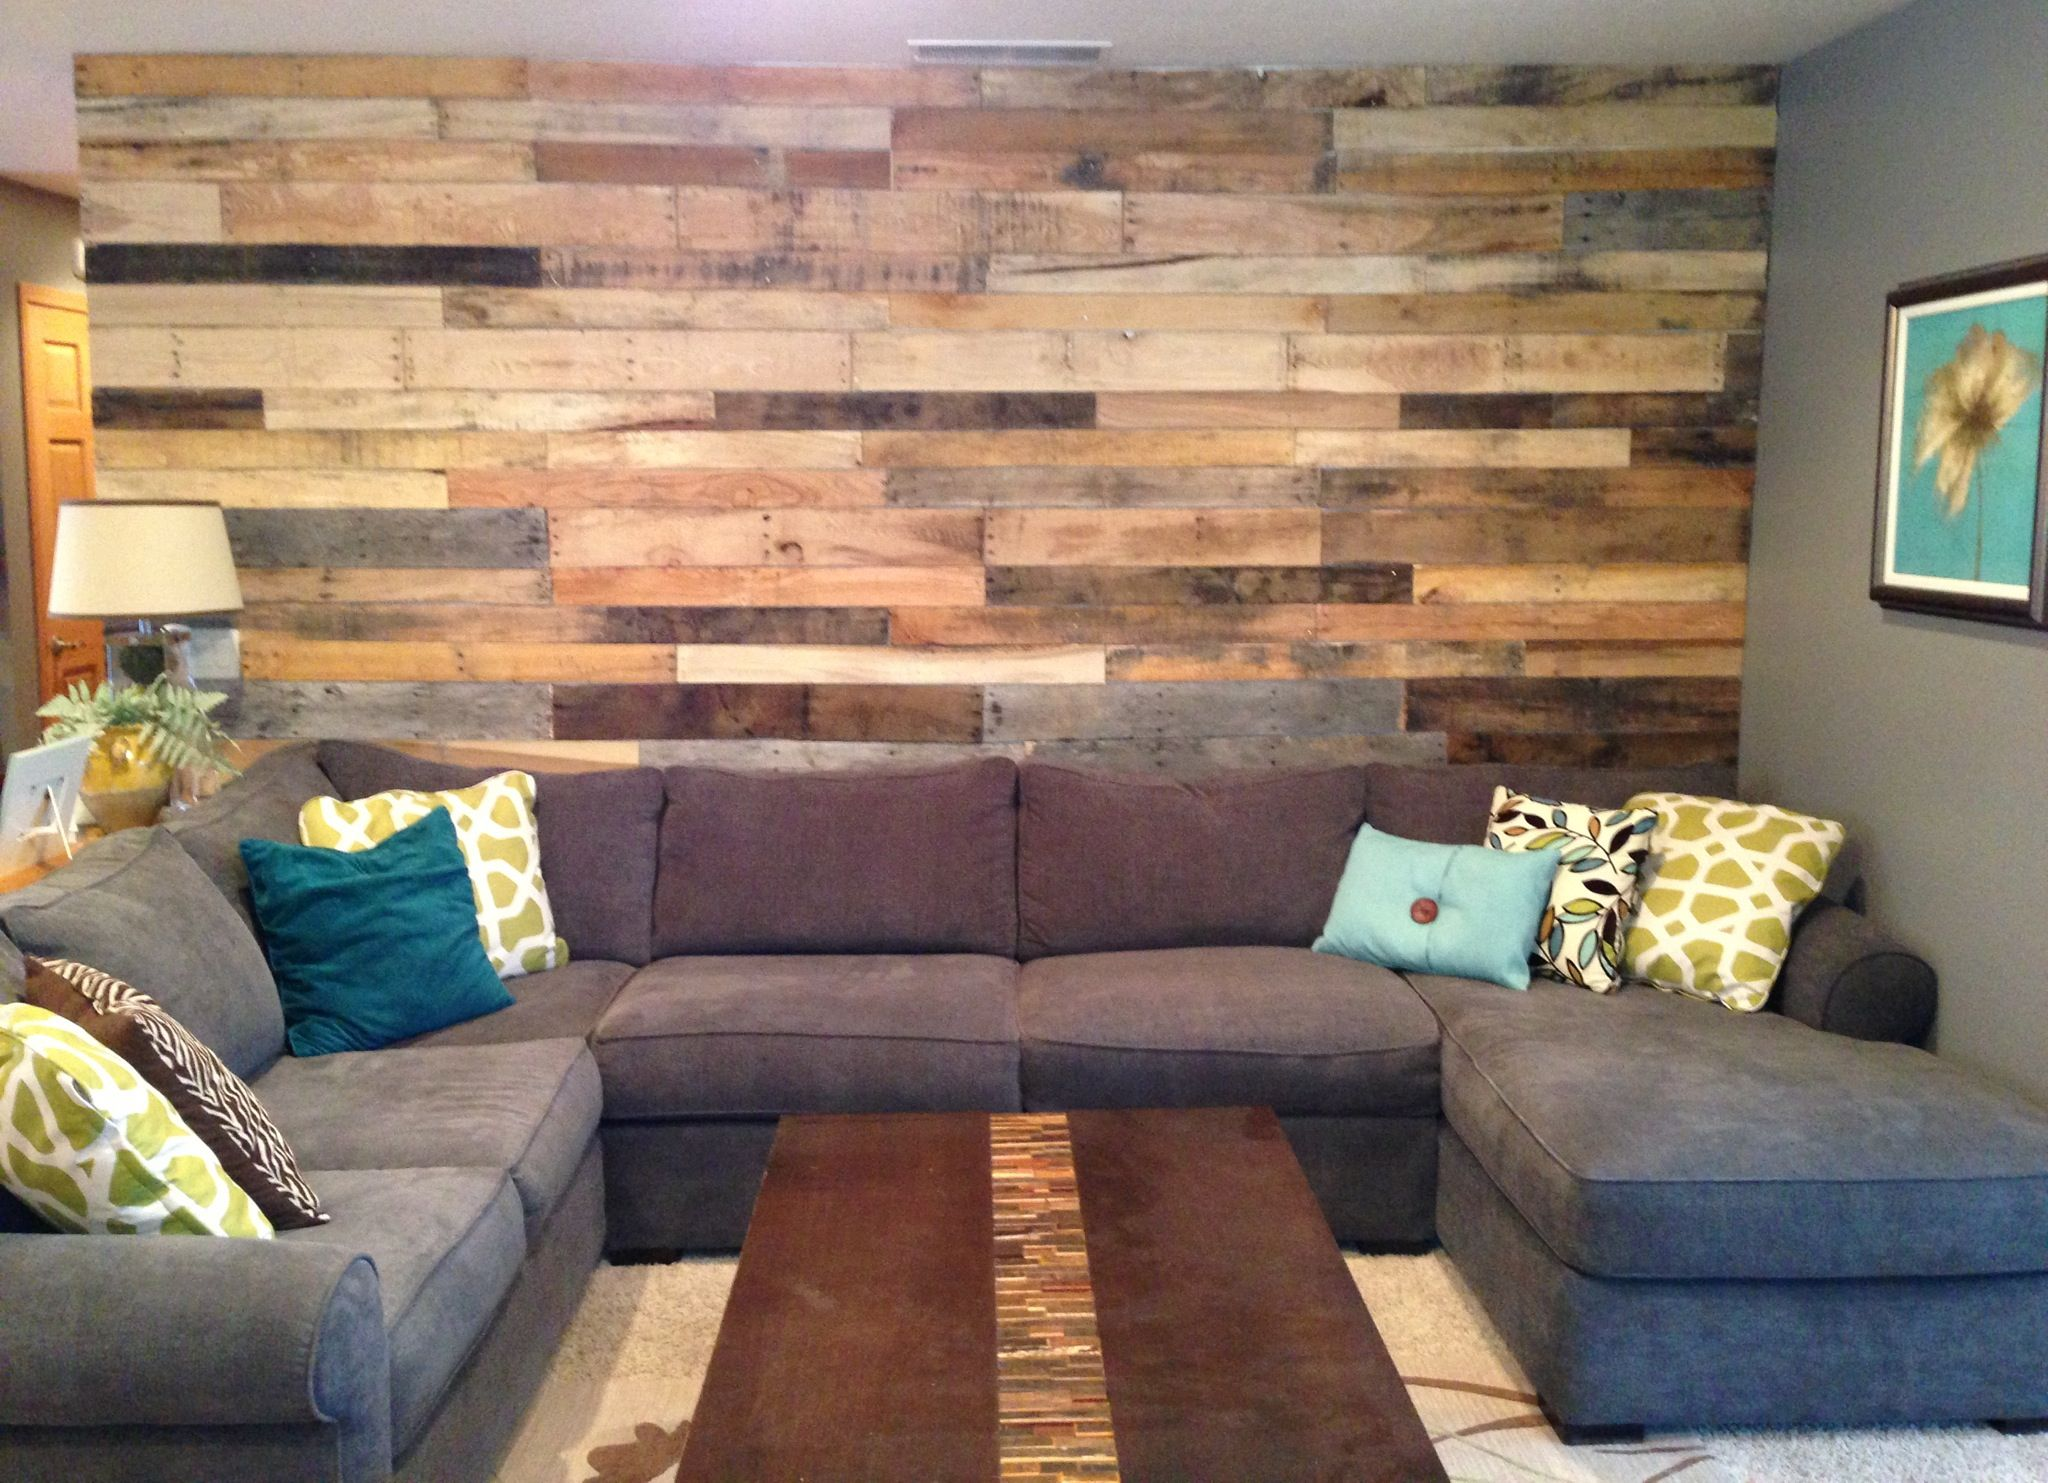 Our Living Room Pallet Wall Pallet Wall Decor Pallet Wall